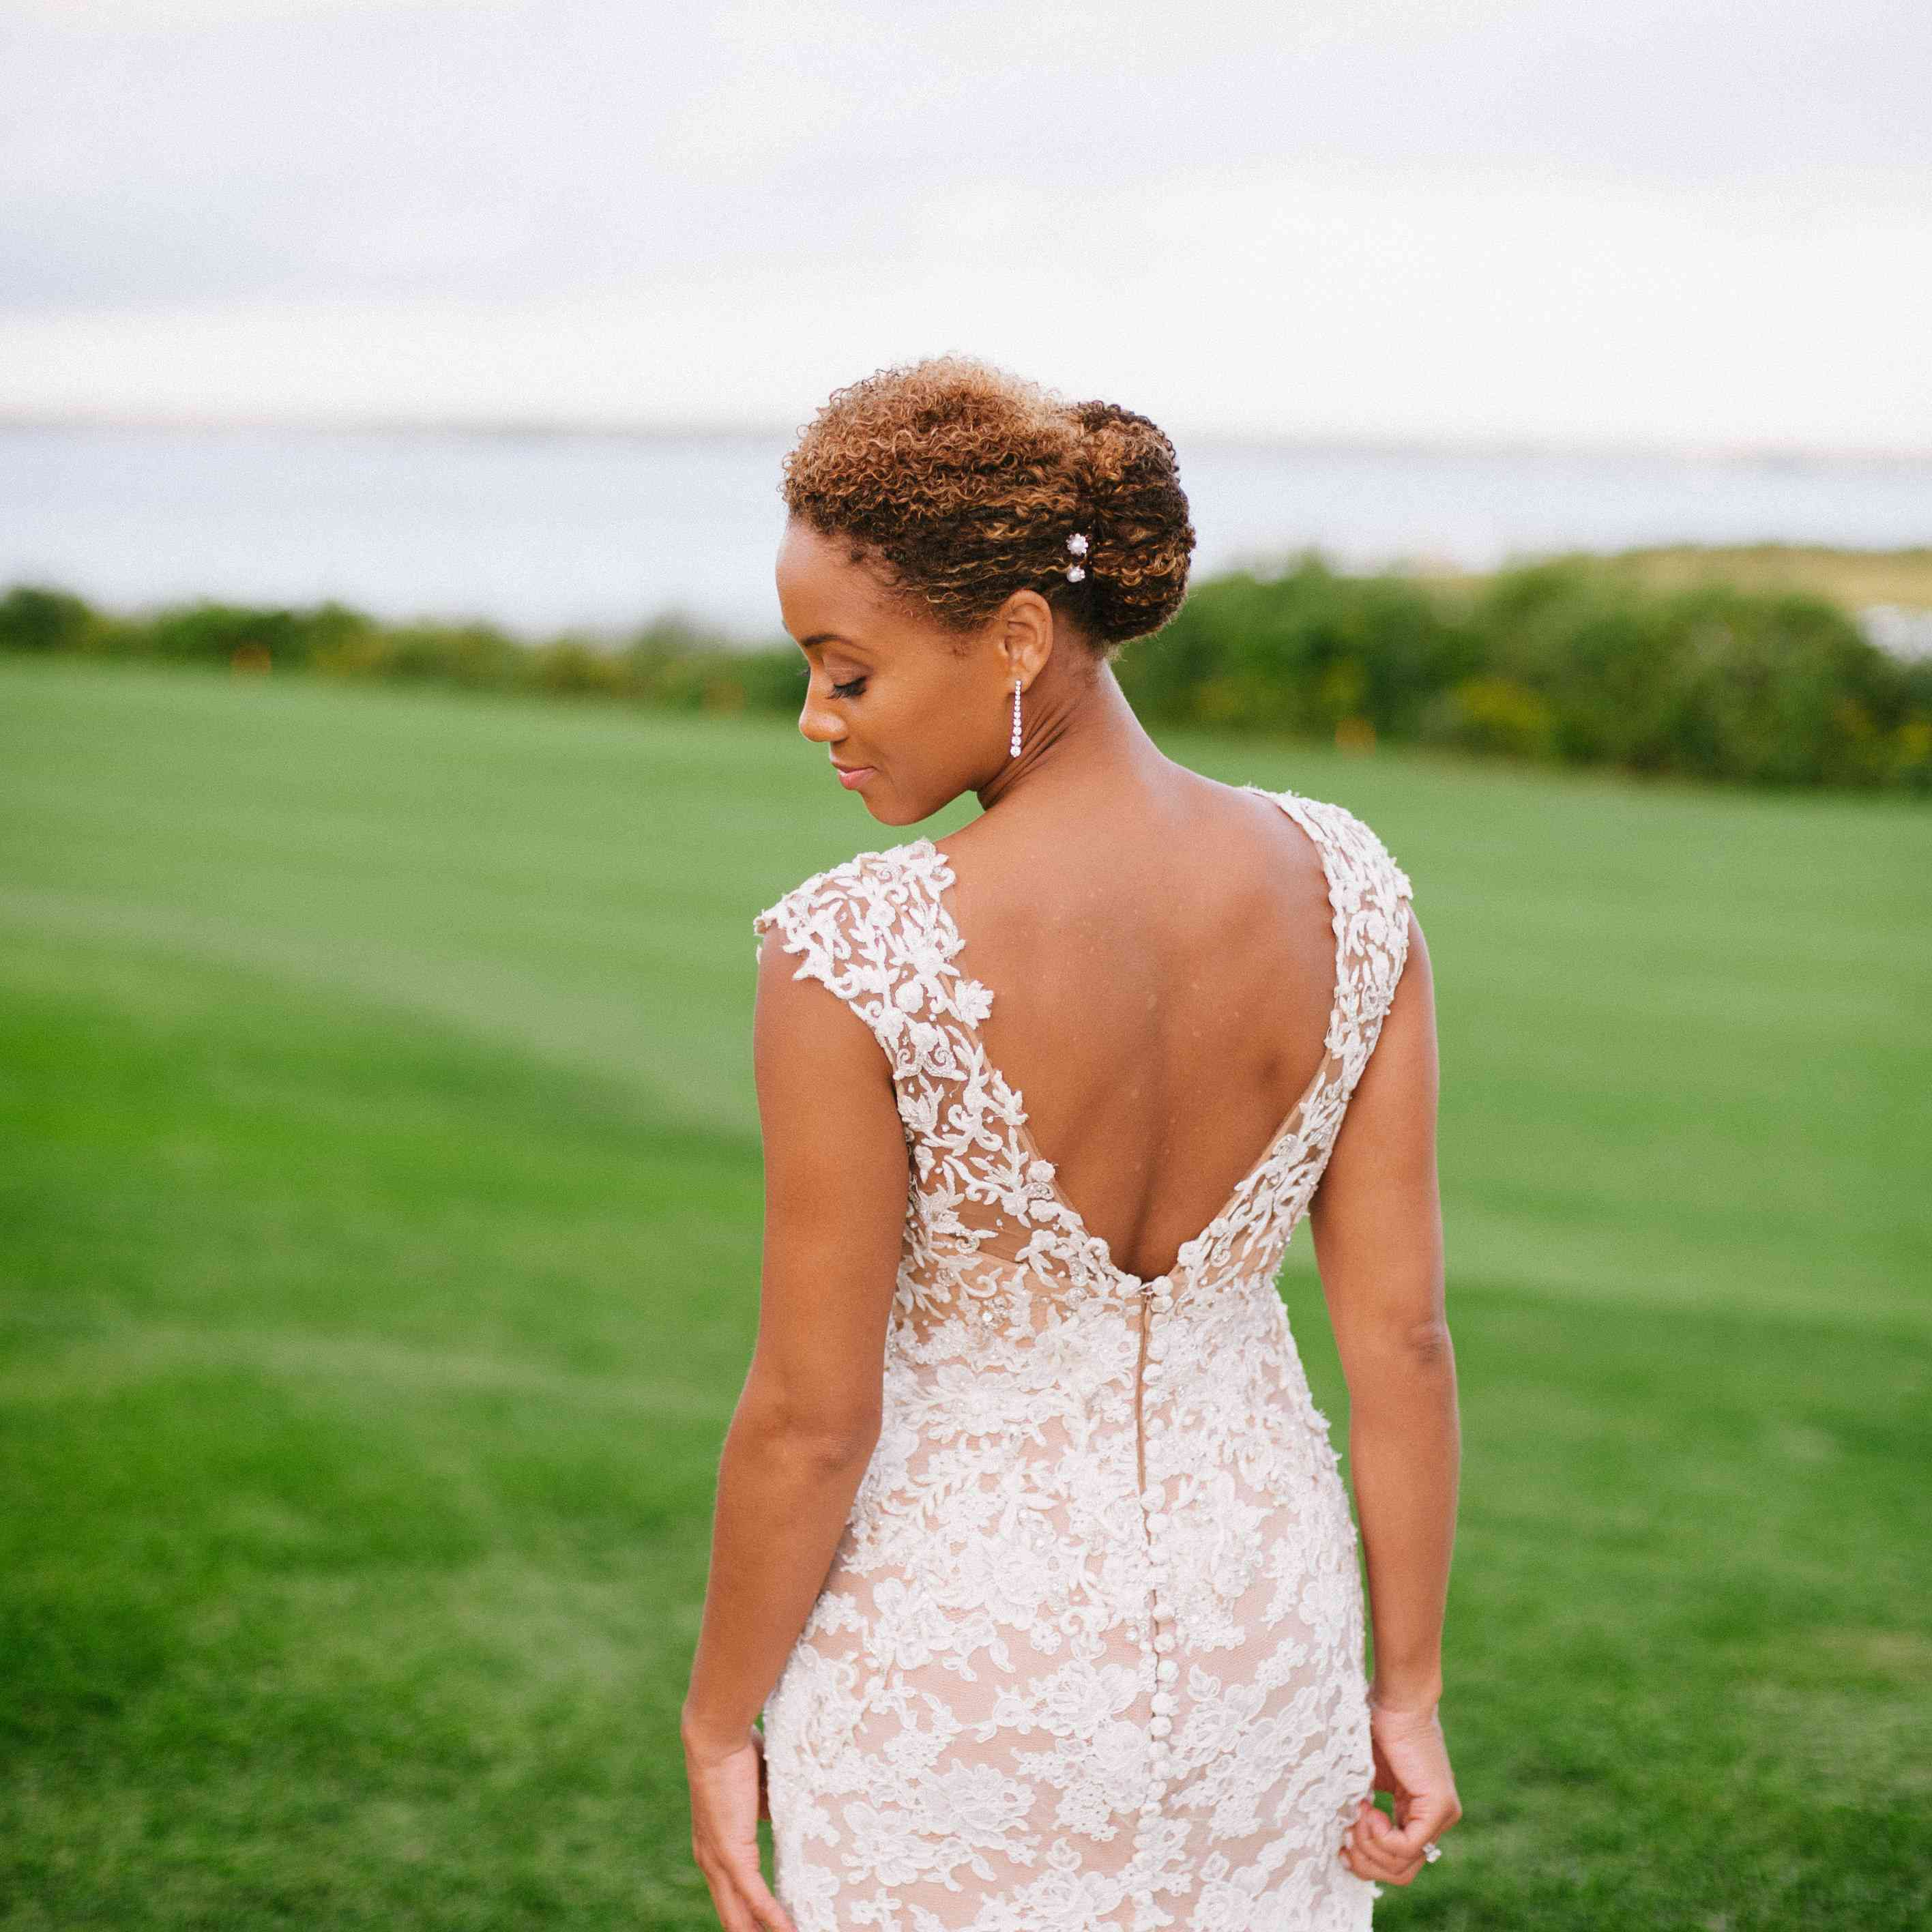 Well Known Sleek High Bun Hairstyles With Side Sweep With The 60 Prettiest Bridal Hairstyles From Real Weddings (View 17 of 20)